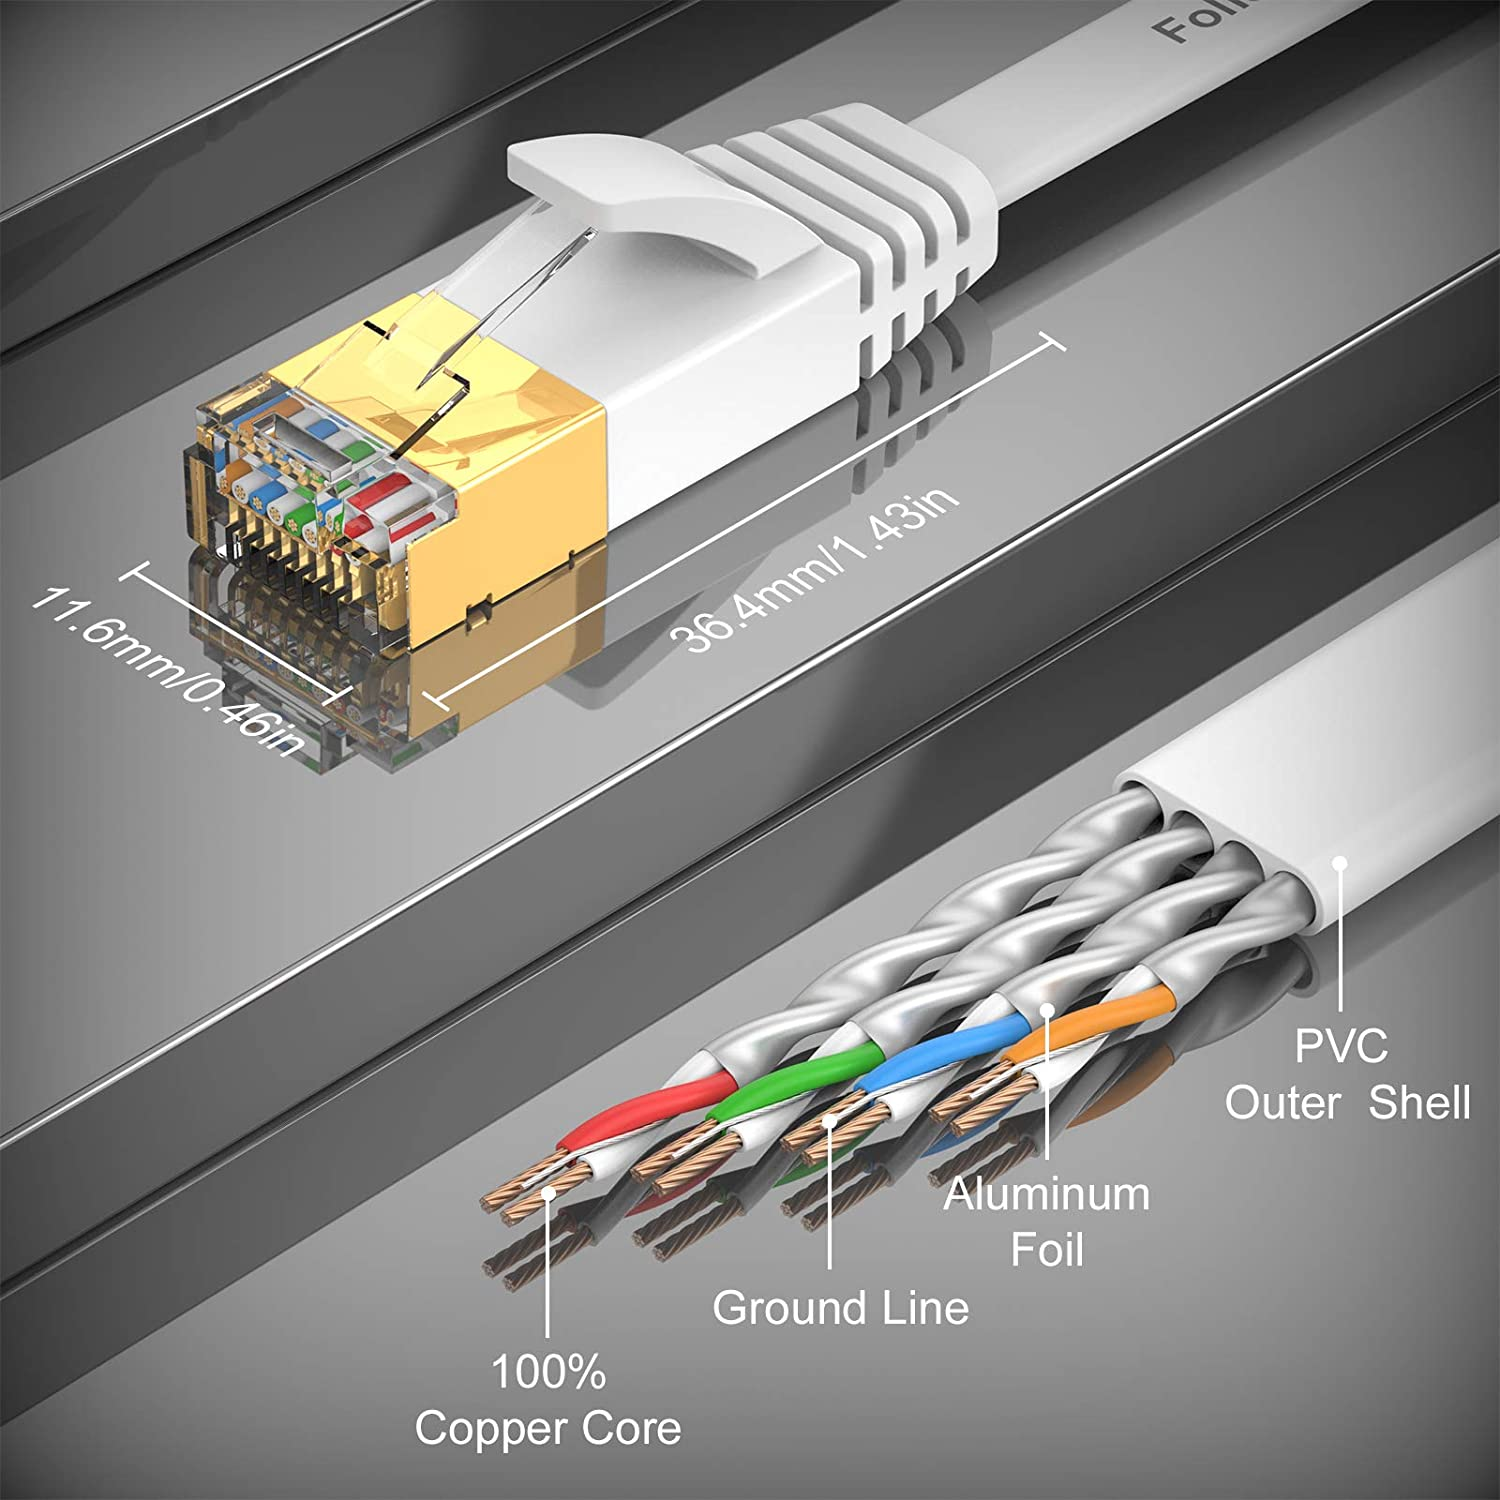 Shielded Flat Long Gigabit Patch Cord LAN Wire for Modem Router Cat 7 Ethernet Cable 30 ft Switch,Compatible with Cat6e//Cat 5e//Cat 5- White High Speed Internet Network Cable with RJ45 Connector